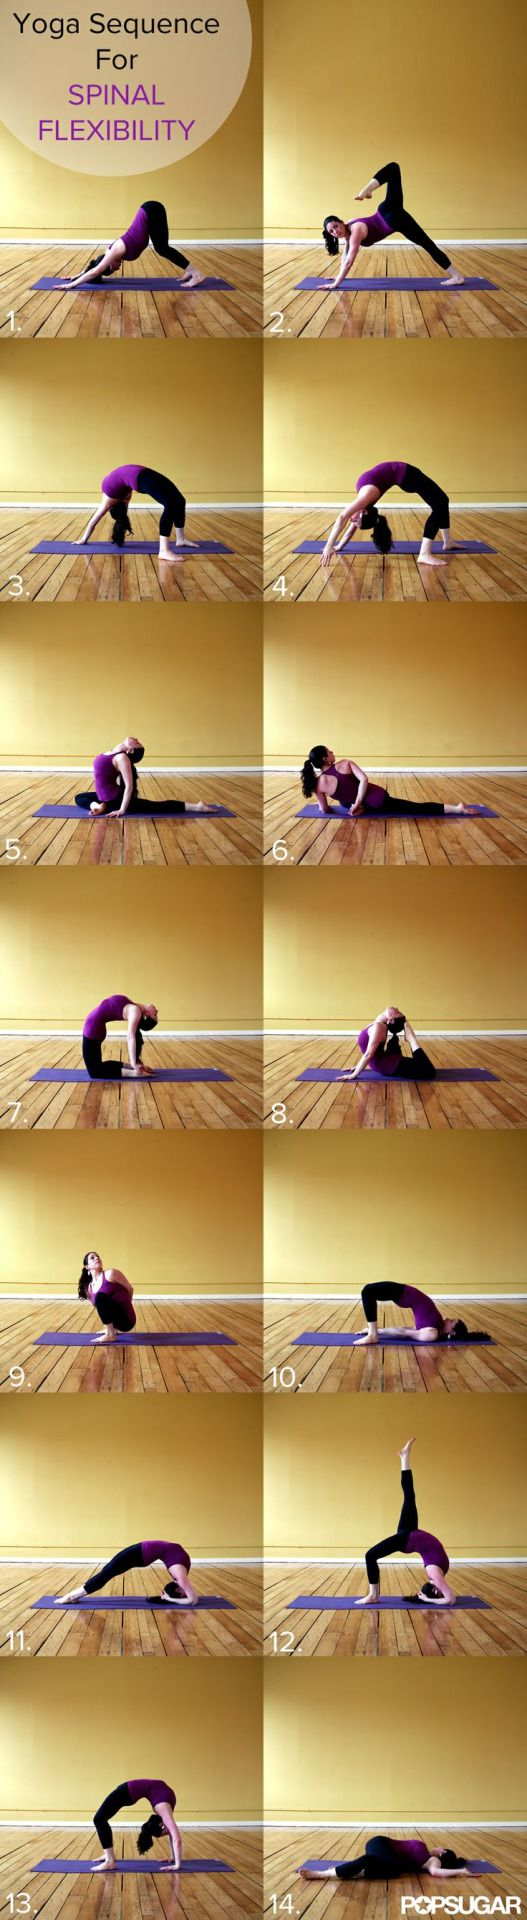 Spinal Flexibility Yoga Sequence